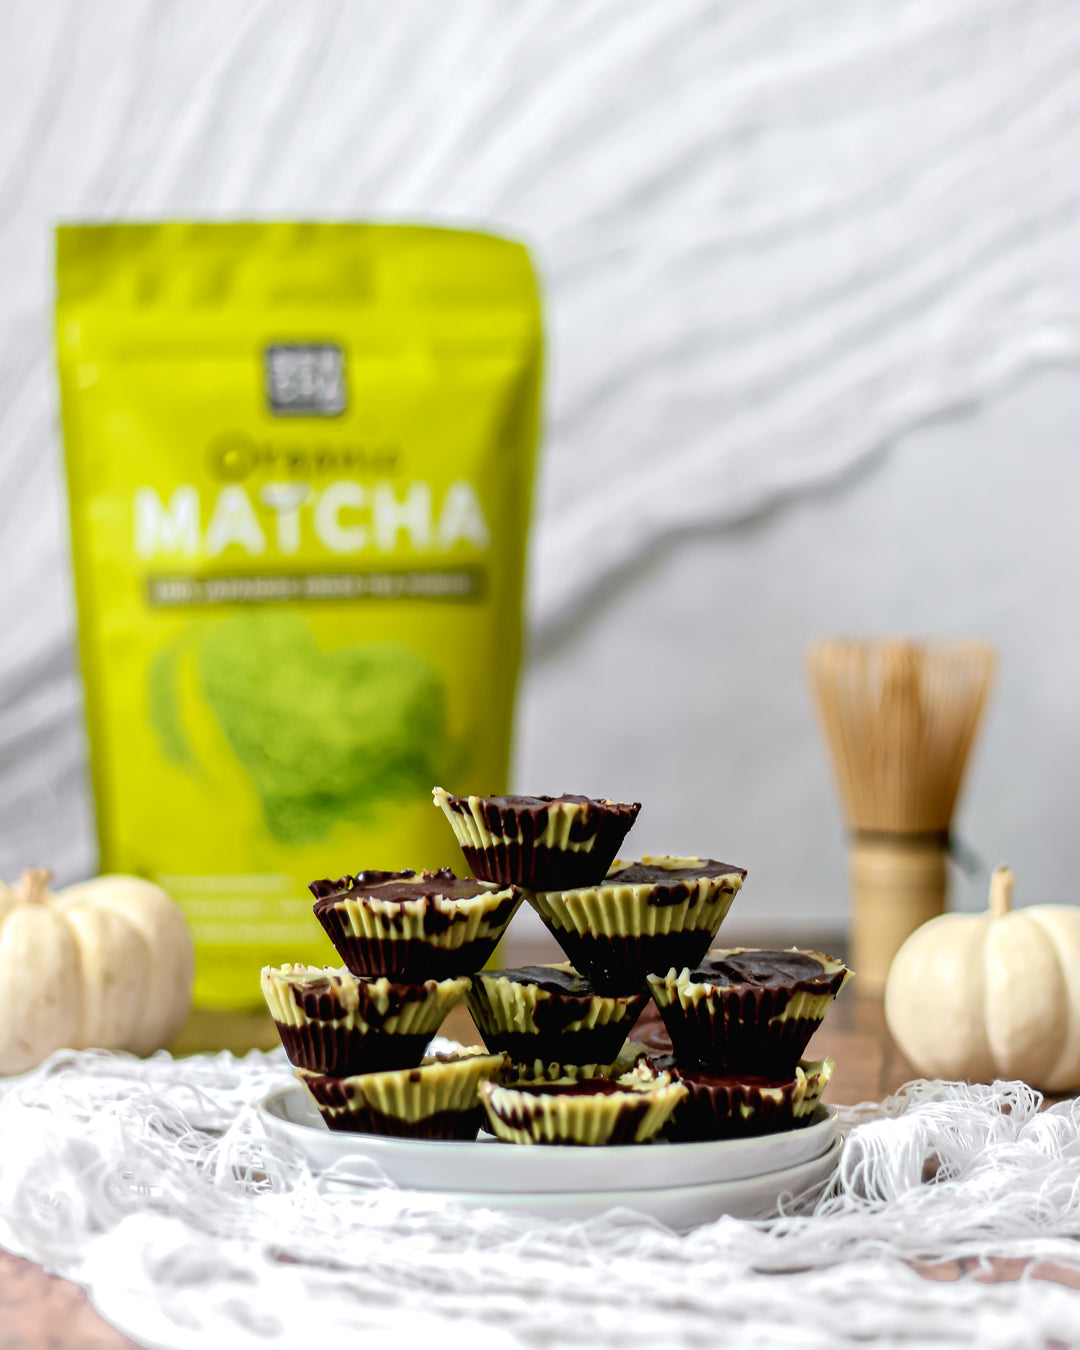 Photo of Sencha naturals matcha green tea powder in a bag, a stack of chocolate matcha dessert cups in the foreground, as well as a bamboo whisk in the back along with some small white decorative pumpkins, all on a white background